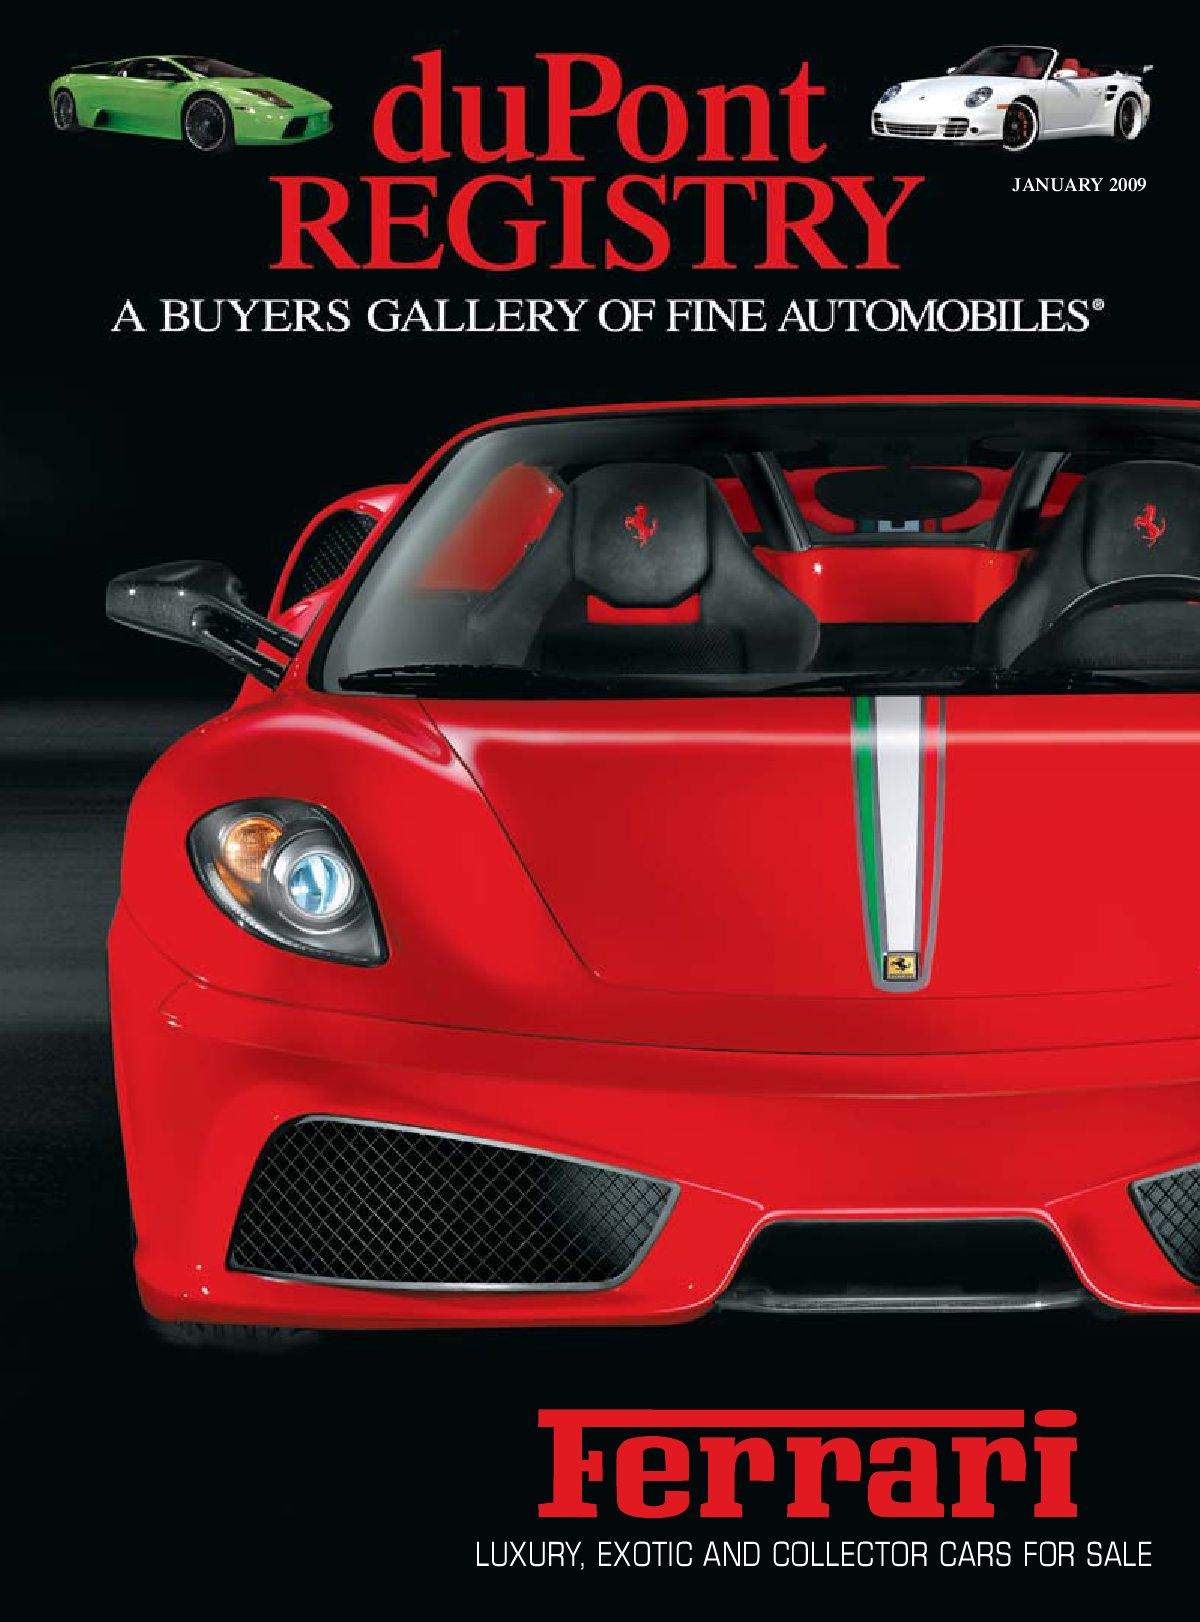 duPontREGISTRY Autos January 2009 by duPont REGISTRY issuu